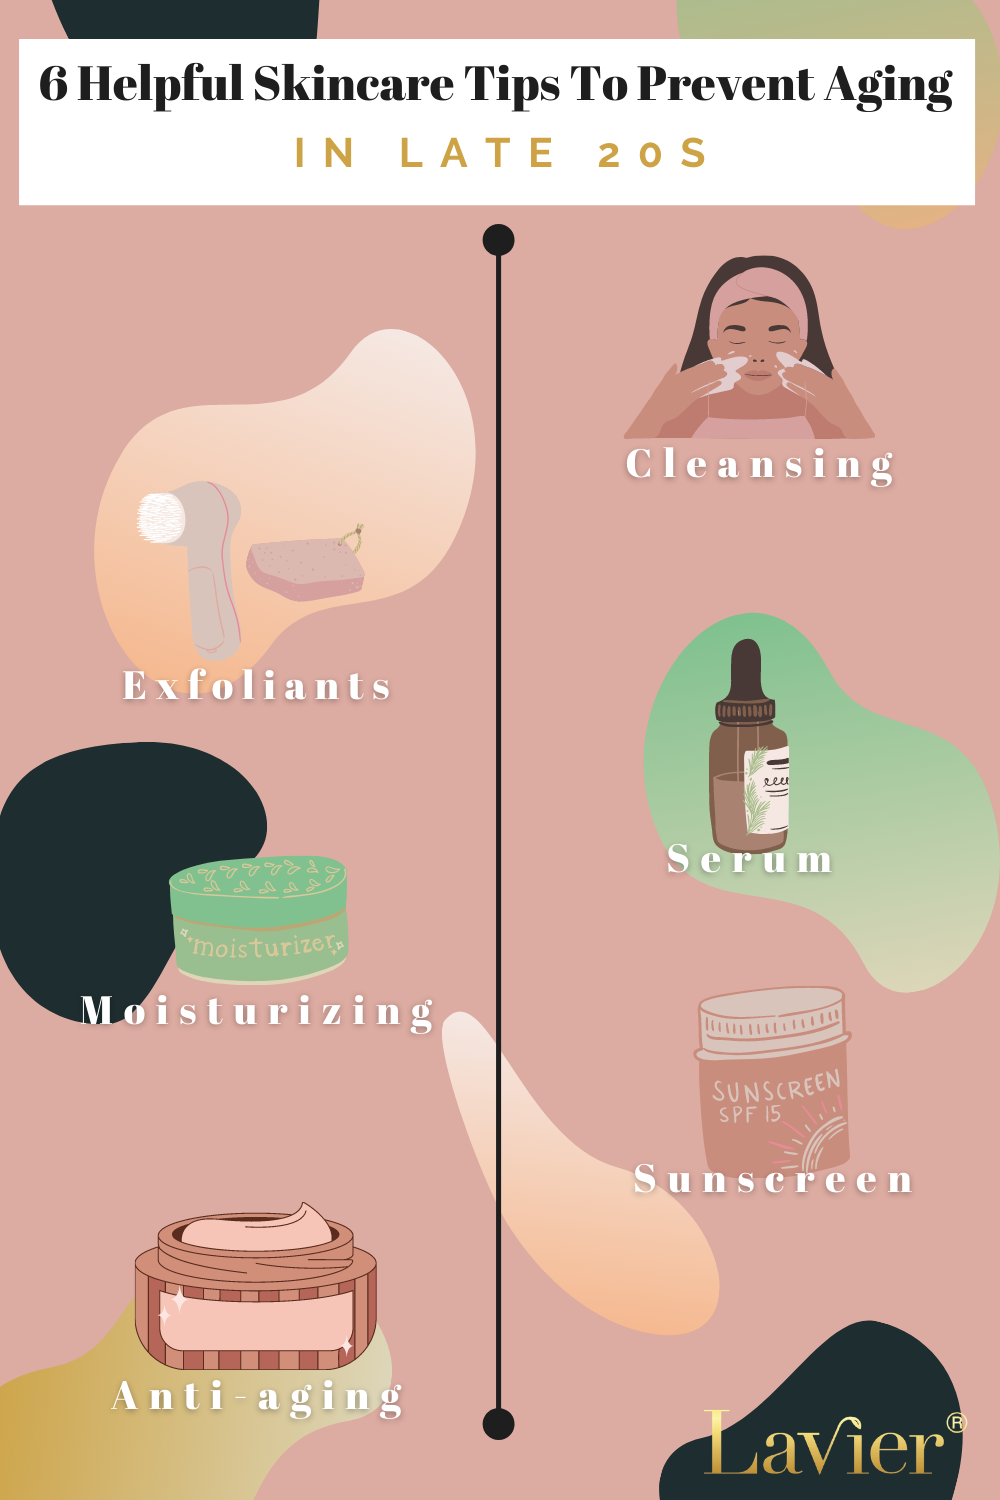 6 Helpful Skincare Tips To Prevent Aging in Late 20s